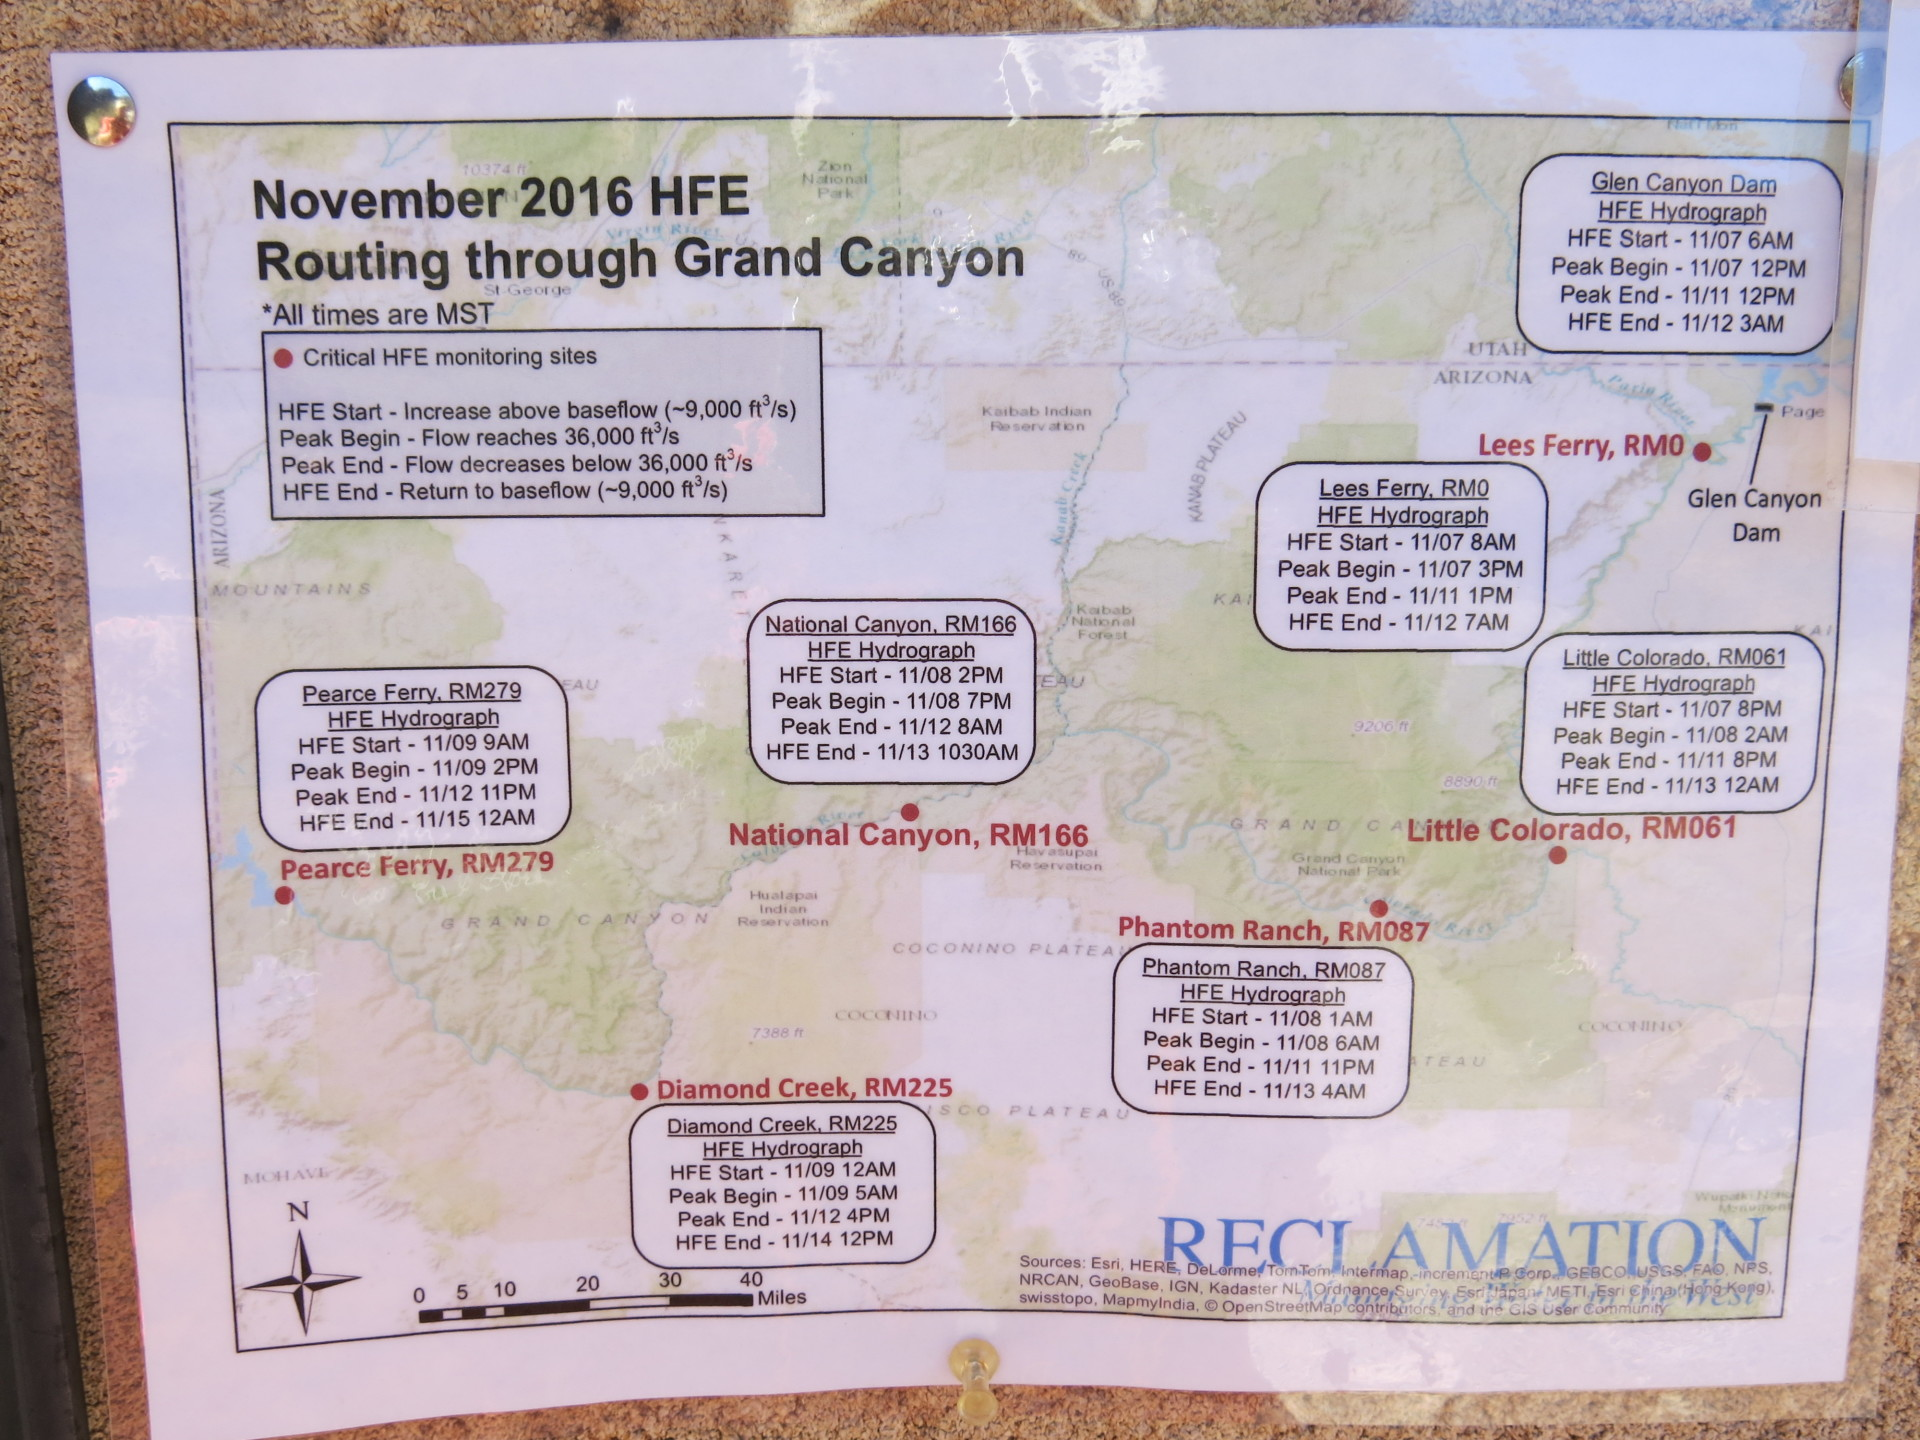 We took a picture of the HFE sign posted at phantom Ranch which is ** miles downstream from Glen Canyon Dam.